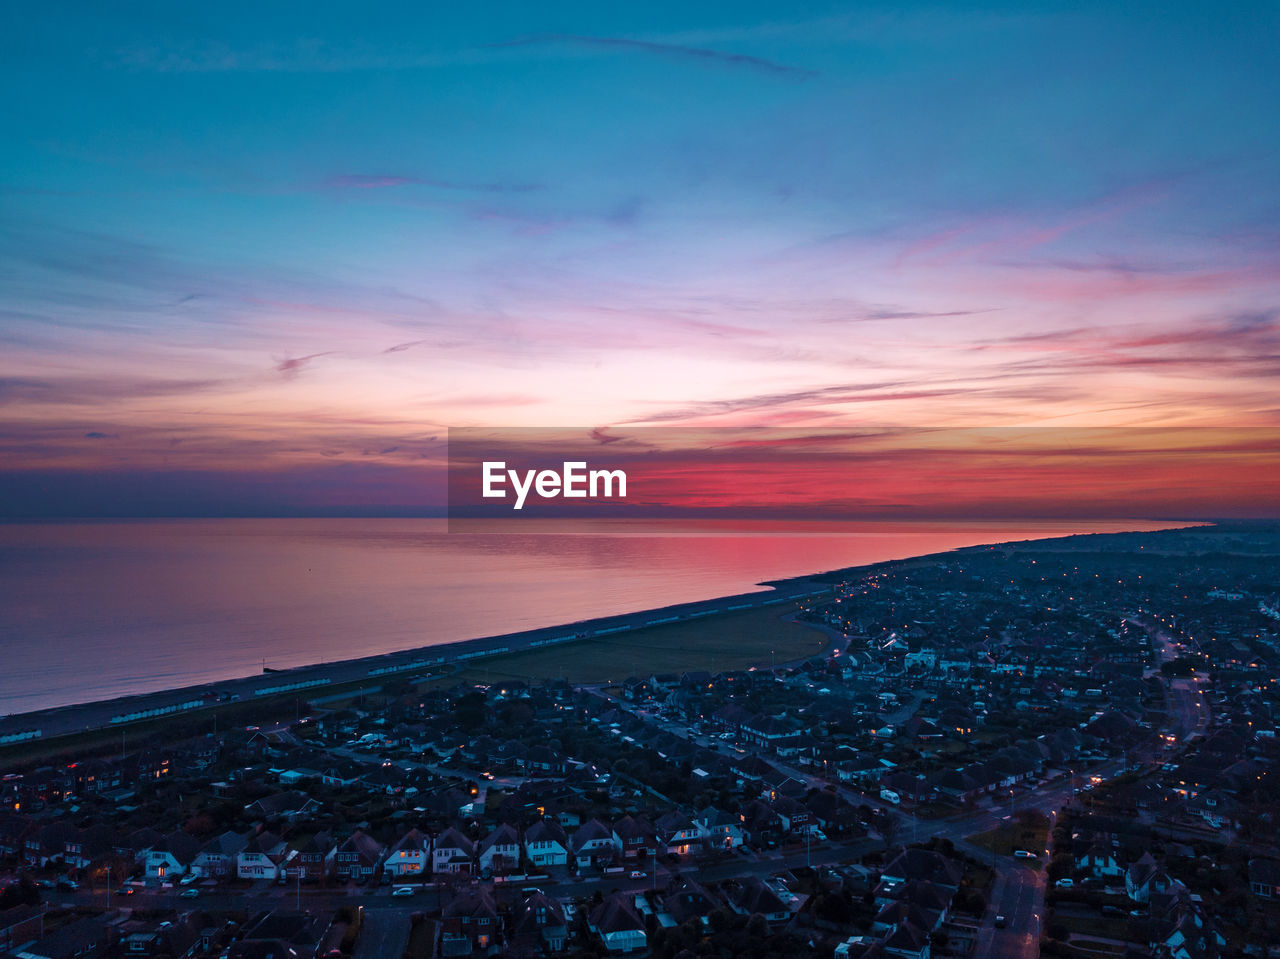 sky, sunset, cloud - sky, architecture, city, scenics - nature, building exterior, water, built structure, sea, nature, beauty in nature, cityscape, high angle view, orange color, crowd, horizon, beach, crowded, horizon over water, outdoors